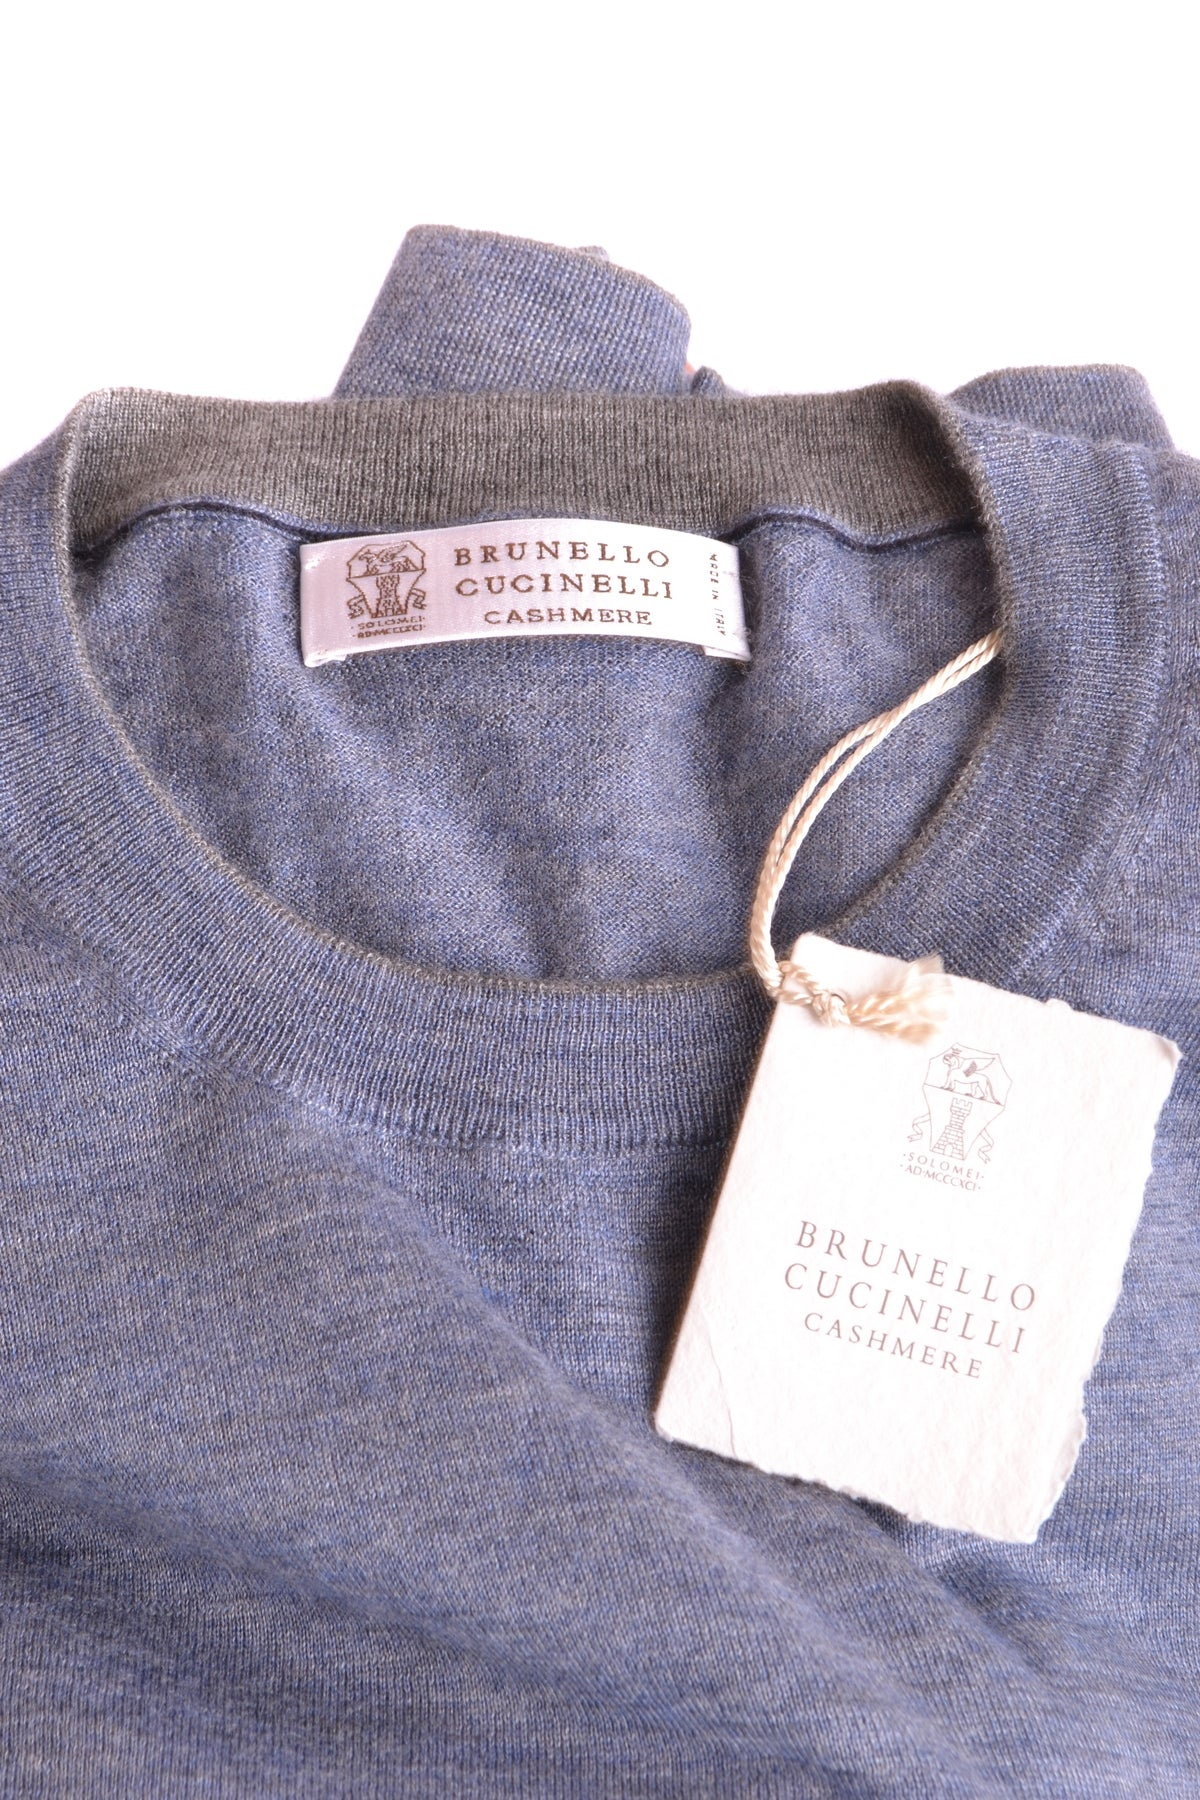 Sweater Brunello Cucinelli-Sweater - MAN-Product Details Season: Fall / WinterTerms: New With LabelMain Color: BlueGender: ManMade In: ItalyManufacturer Part Number: M2300150 Ct232Size: ItYear: 2018Clothing Type: Sweater Composition: Cashmere 70%, Silk 30%-Keyomi-Sook